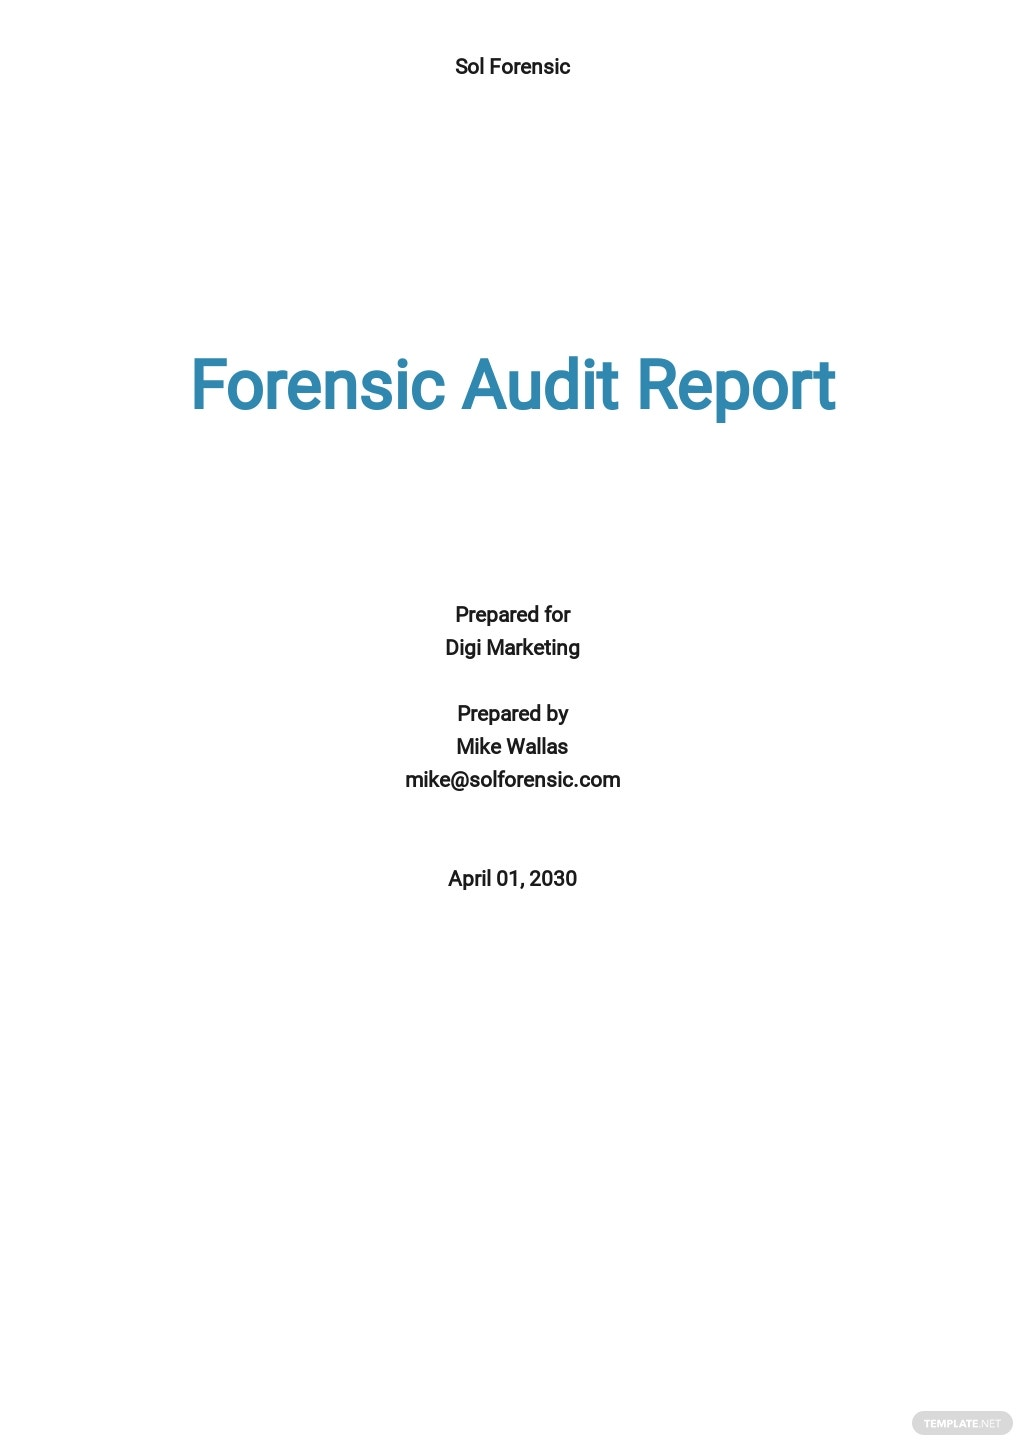 Forensic Audit Report Template.jpe